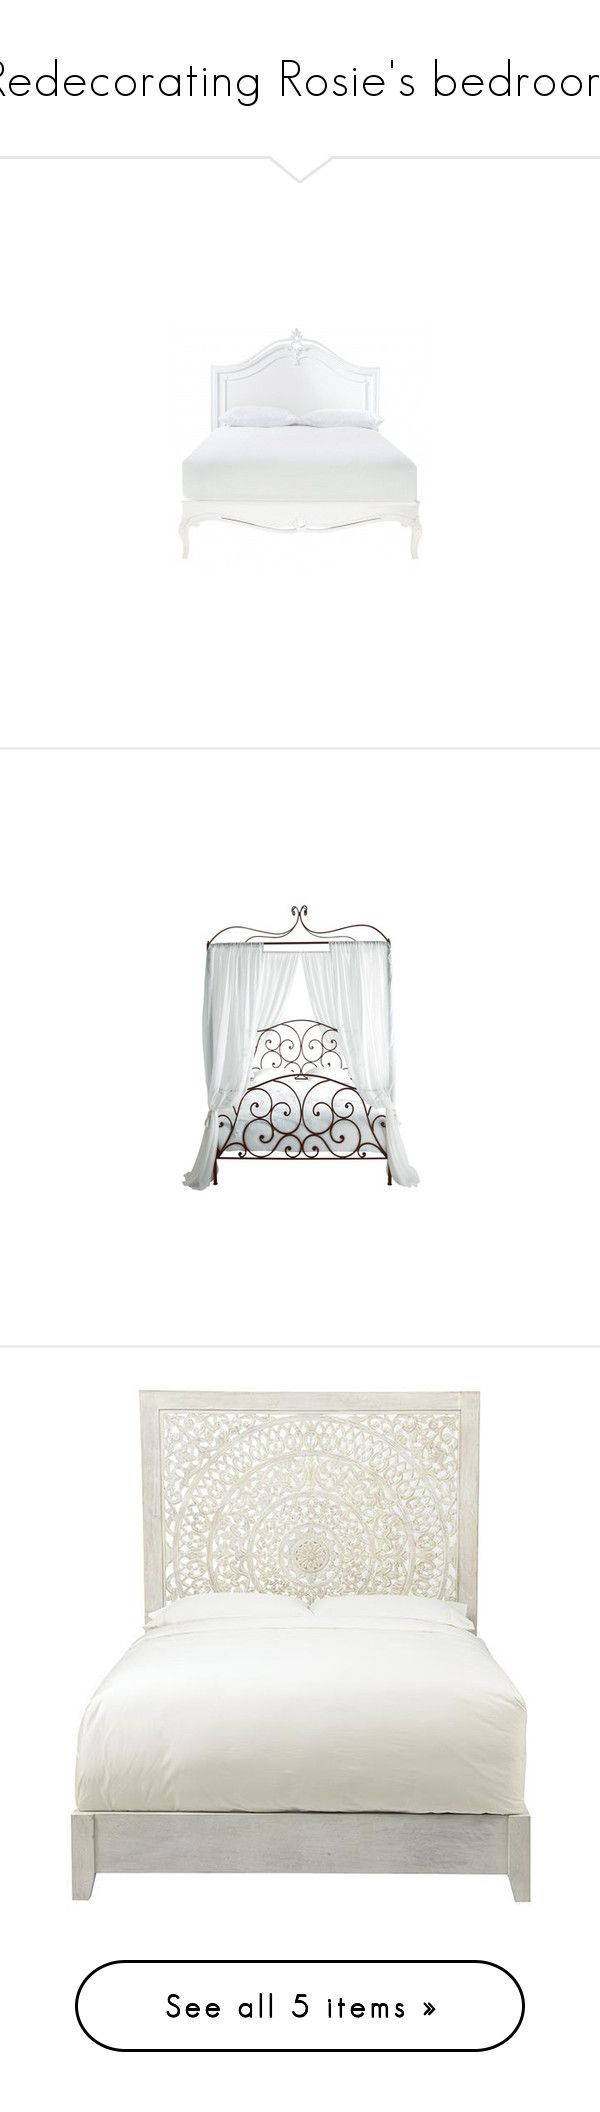 """""""Redecorating Rosie's bedroom"""" by alleypea ❤ liked on Polyvore featuring home, furniture, beds, bedroom, home decor, handmade headboards, mango wood furniture, handcrafted furniture, handmade beds and hardware furniture"""